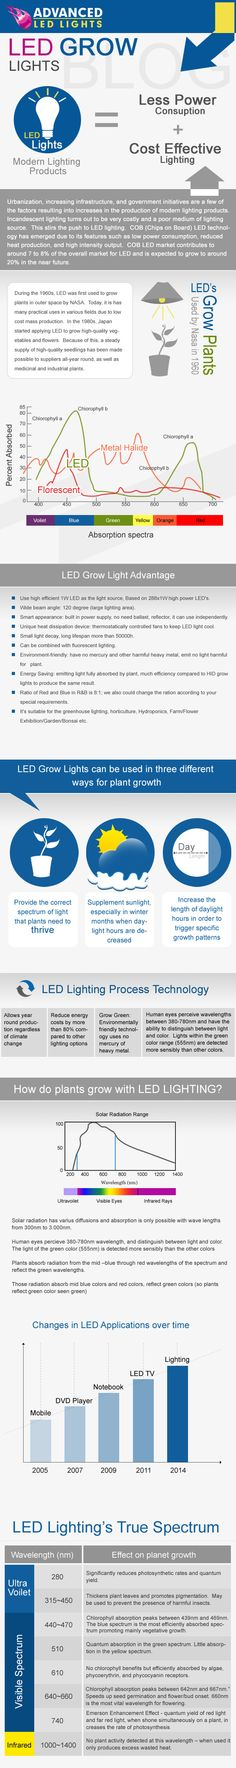 Use high efficient 1W LED as the light source, Based on 288x1W high power LED's.